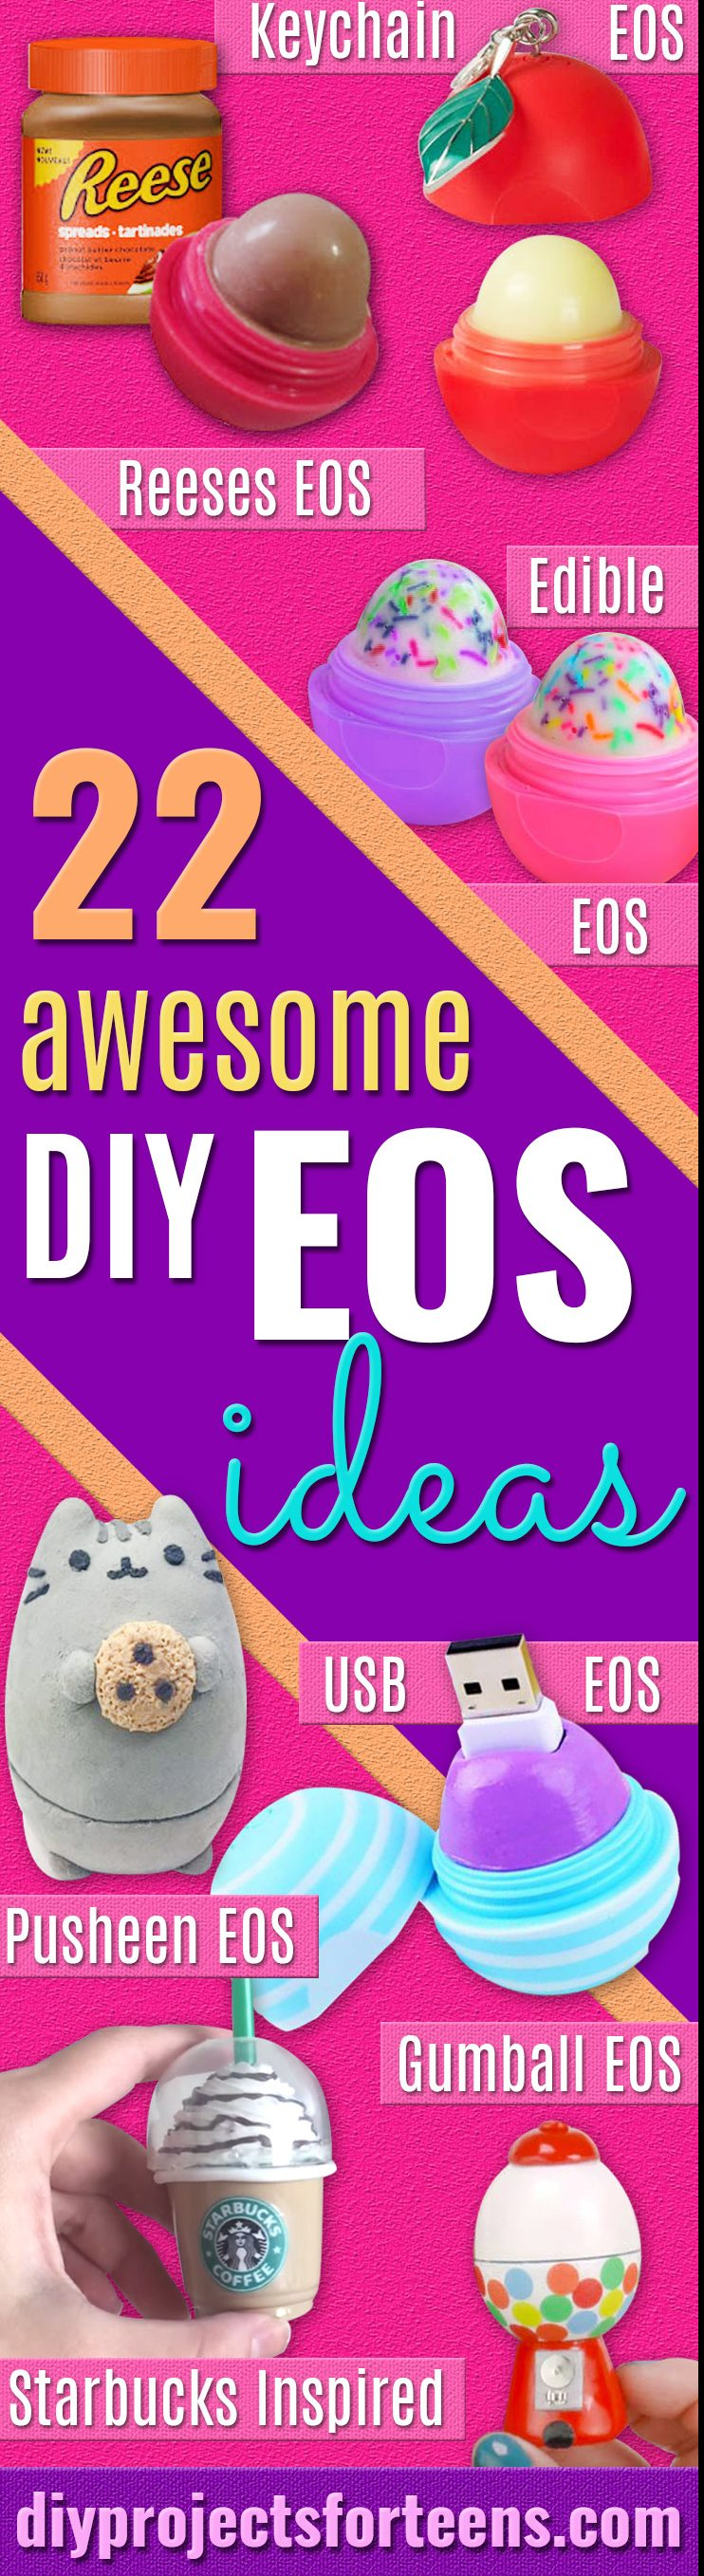 22 Most Awesome DIY EOS ideas